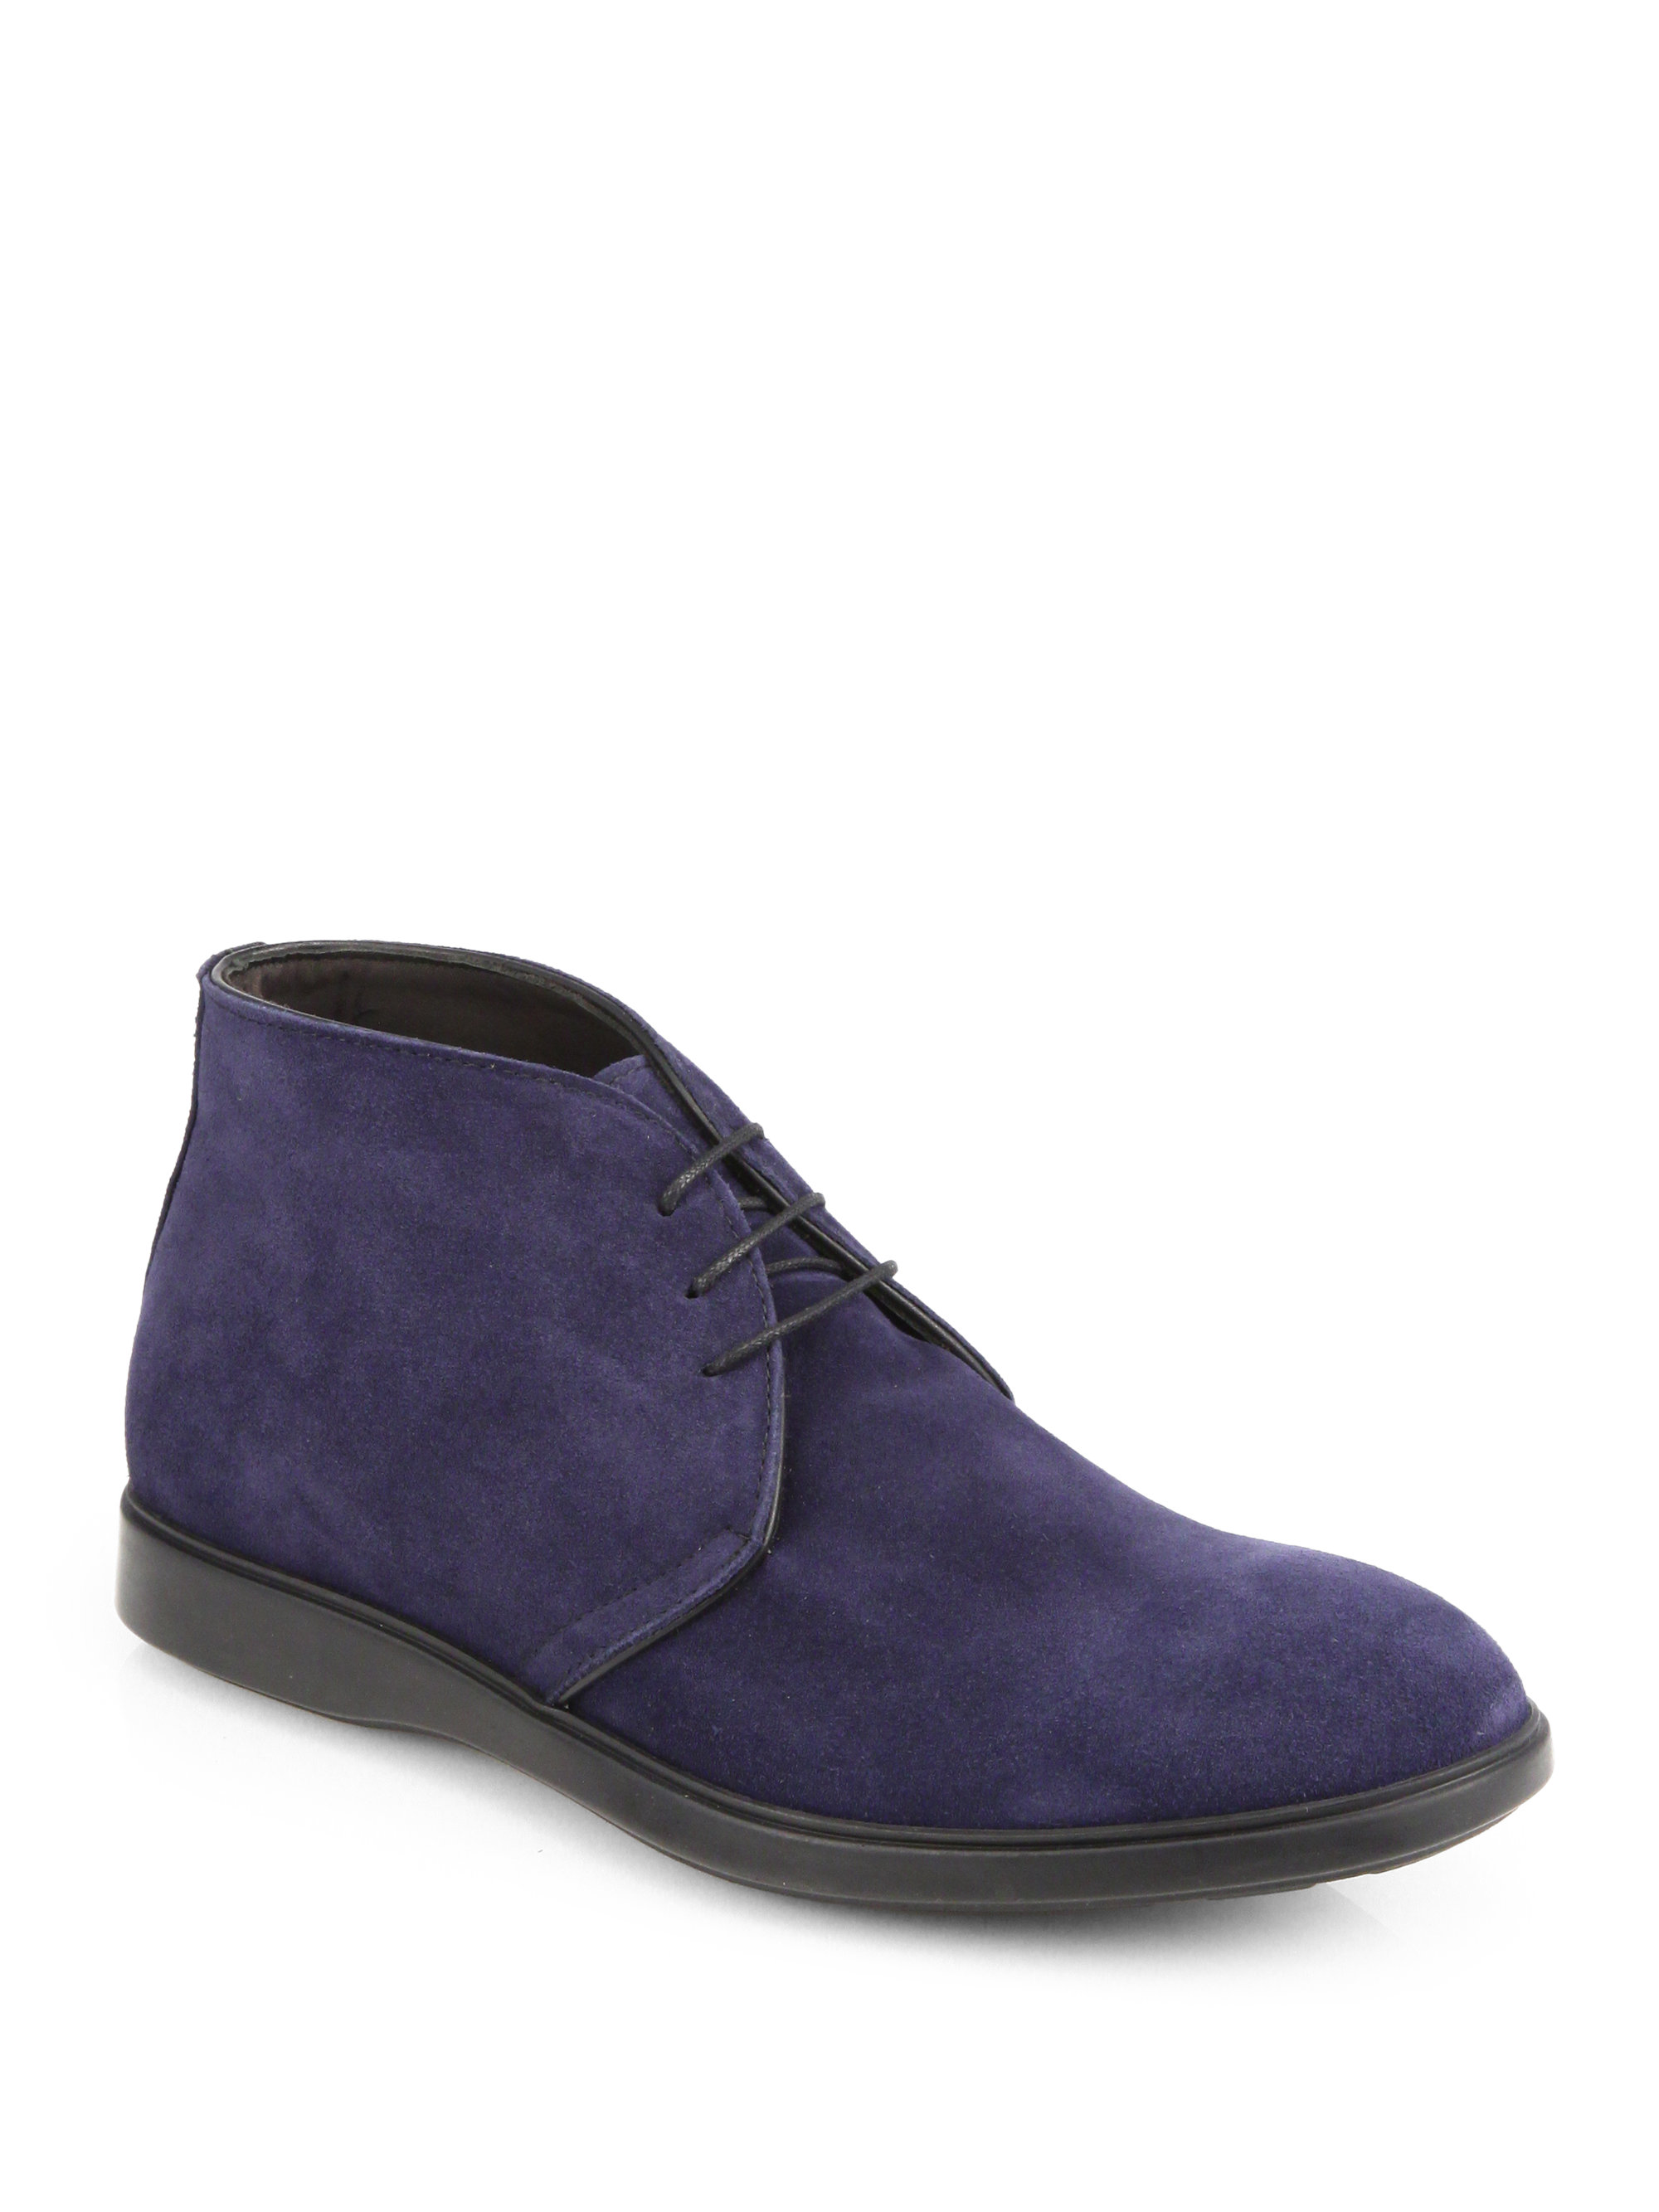 saks fifth avenue suede chukka boots in blue for navy